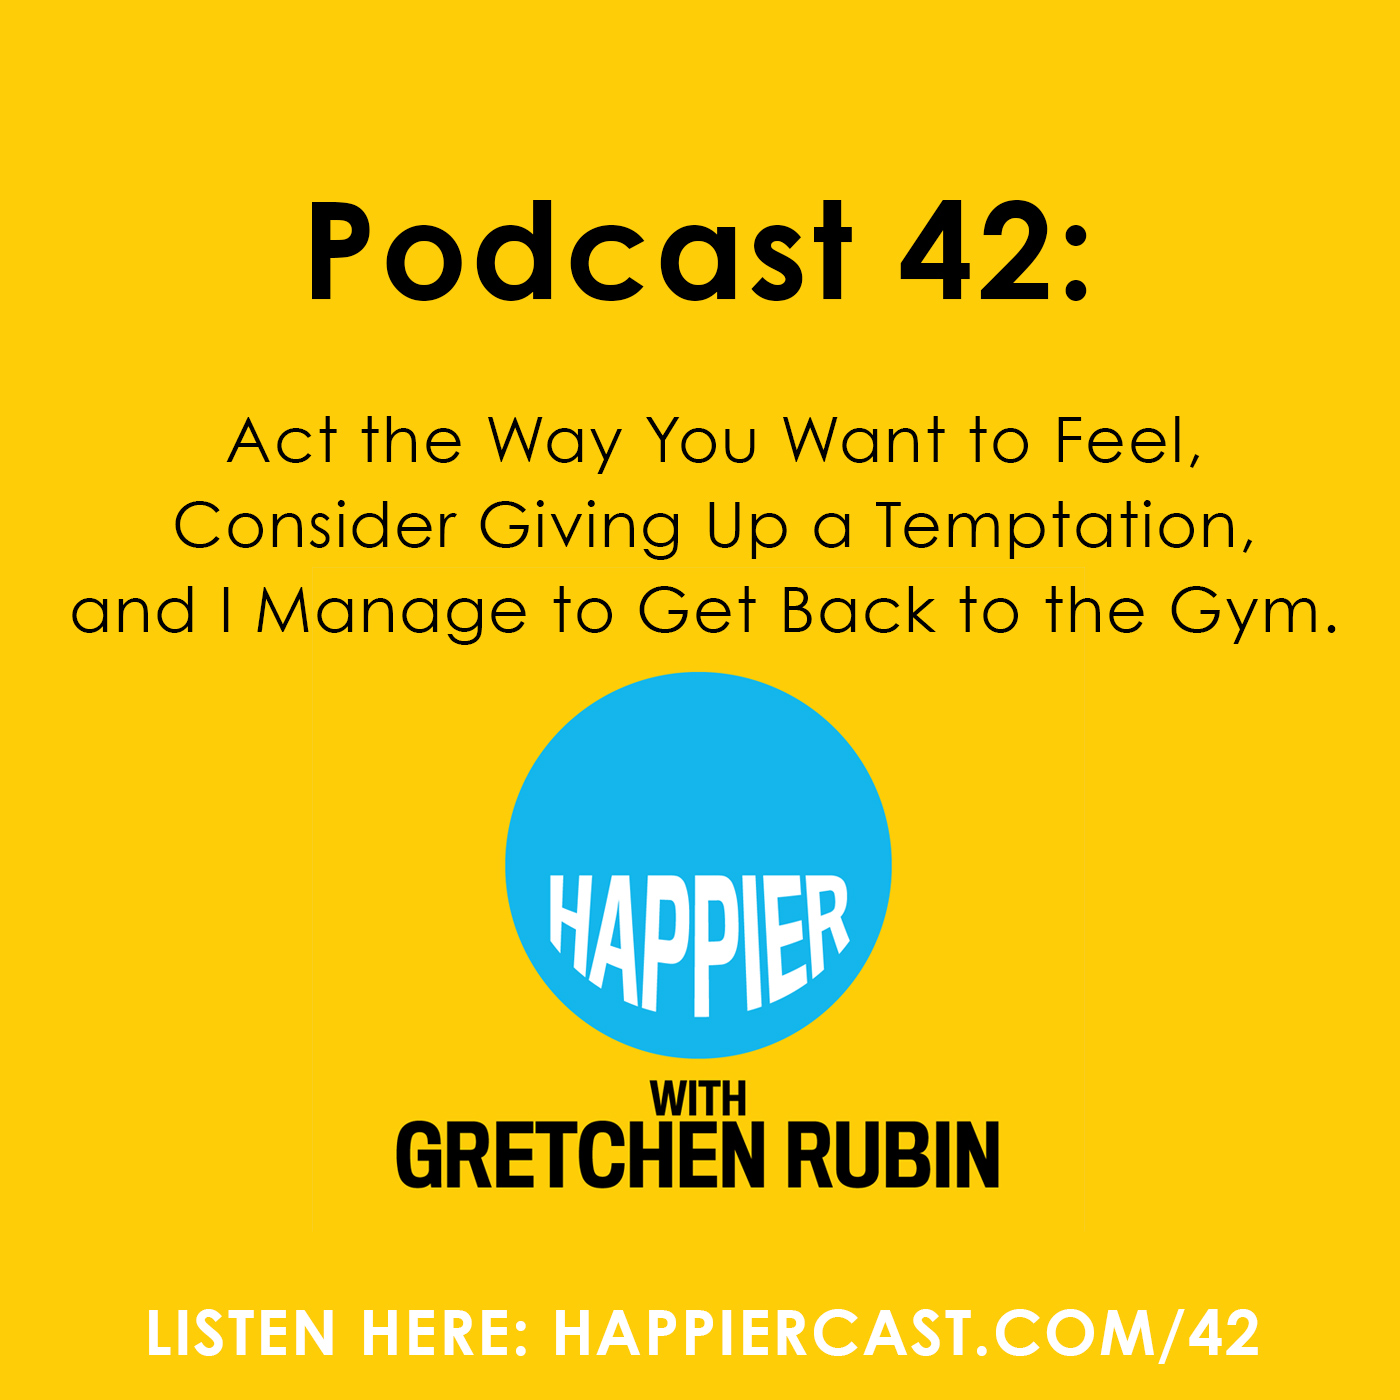 Happier with Gretchen Rubin #42 - Listen at Happiercast.com/42